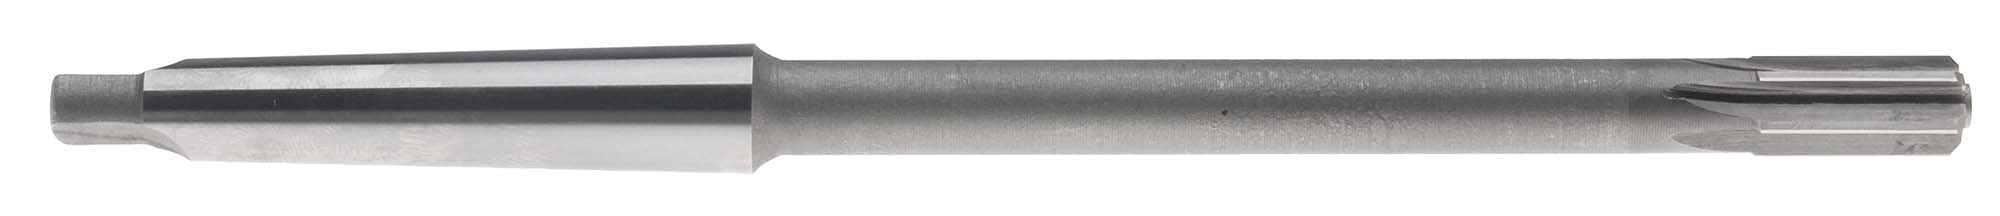 "2-1/8"" Expanding Machine Reamer, Taper Shank, High Speed Steel"